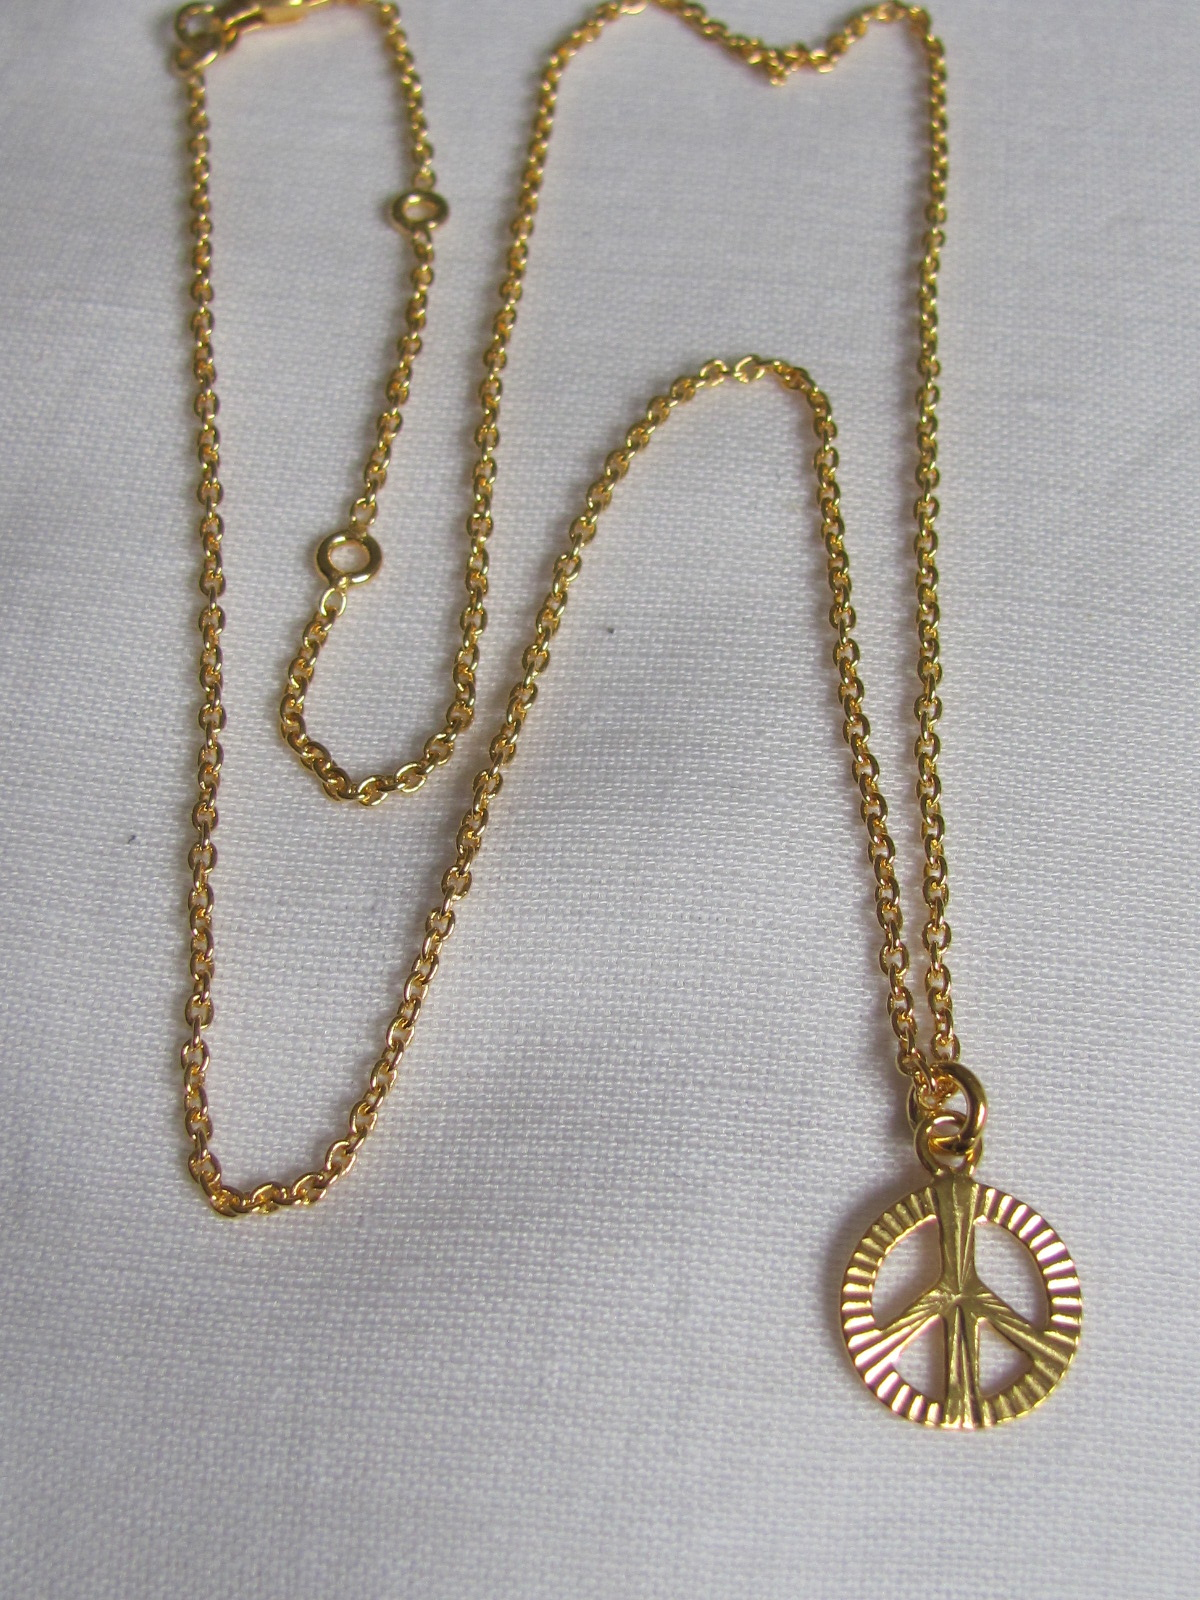 Necklace gold on silver with peace pendant charm